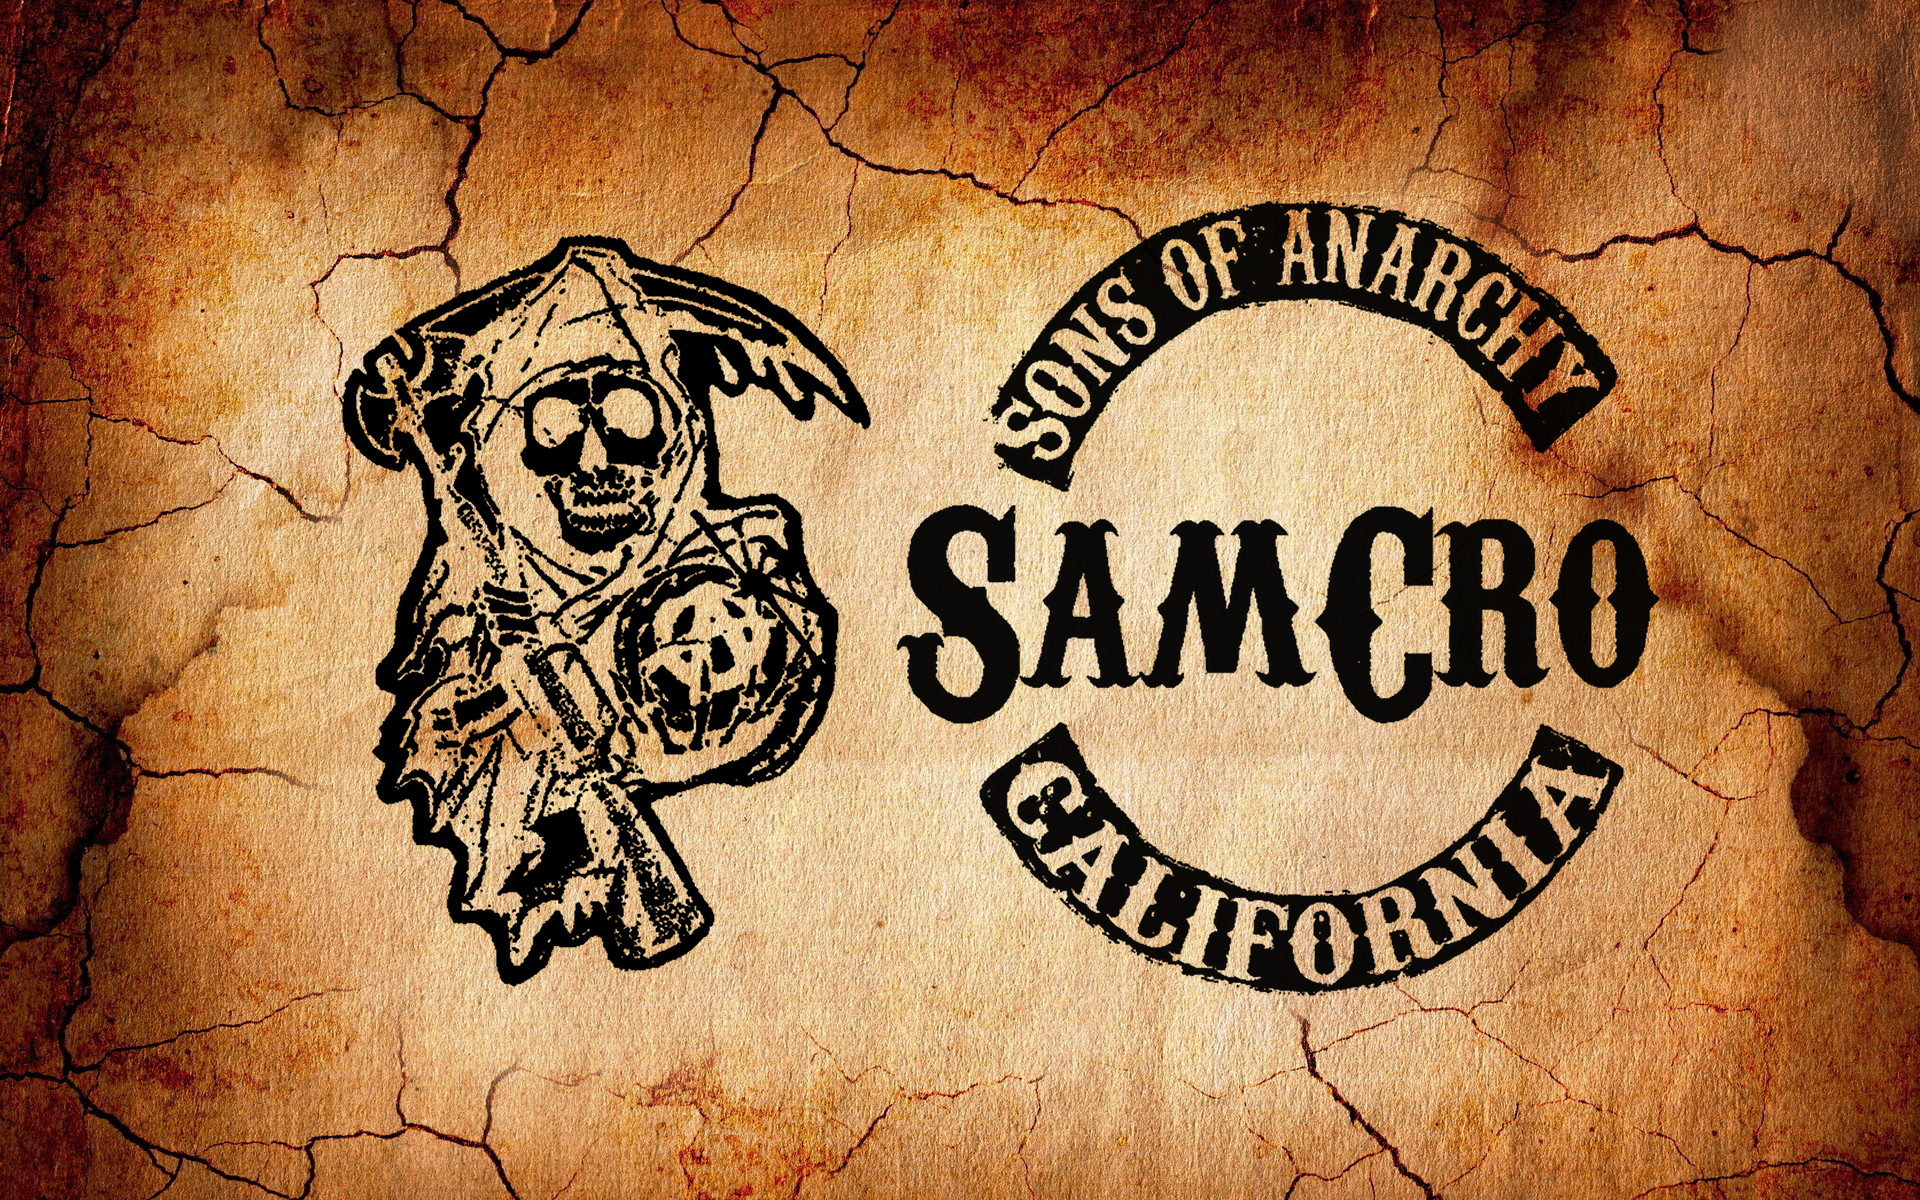 sons of anarchy wallpaper   Sons of Anarchy HD Wallpaper 1920×1080 Sons of  Anarchy HD Wallpaper